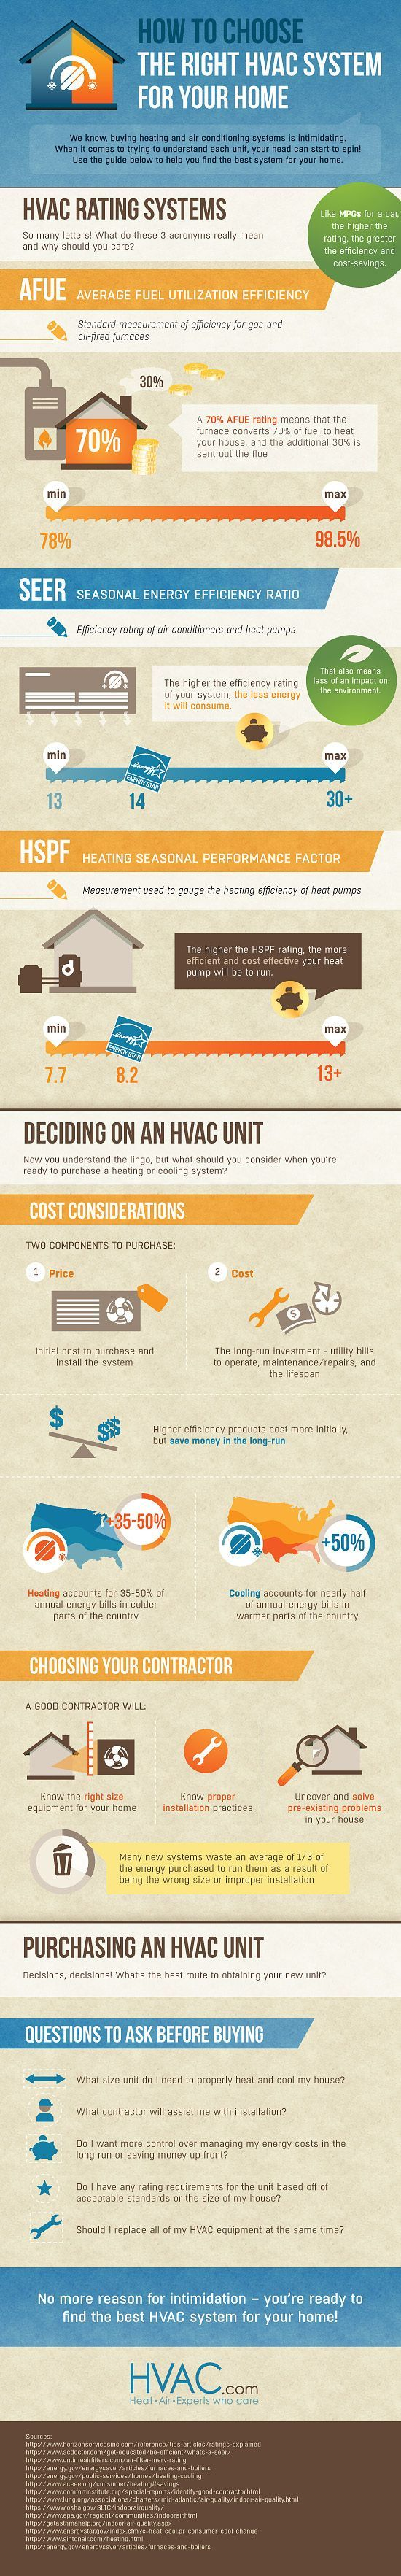 Average cost of new furnace and ac for home - Air Conditioning And Heating Repair Https Www Aaaductcleaningsa Com San